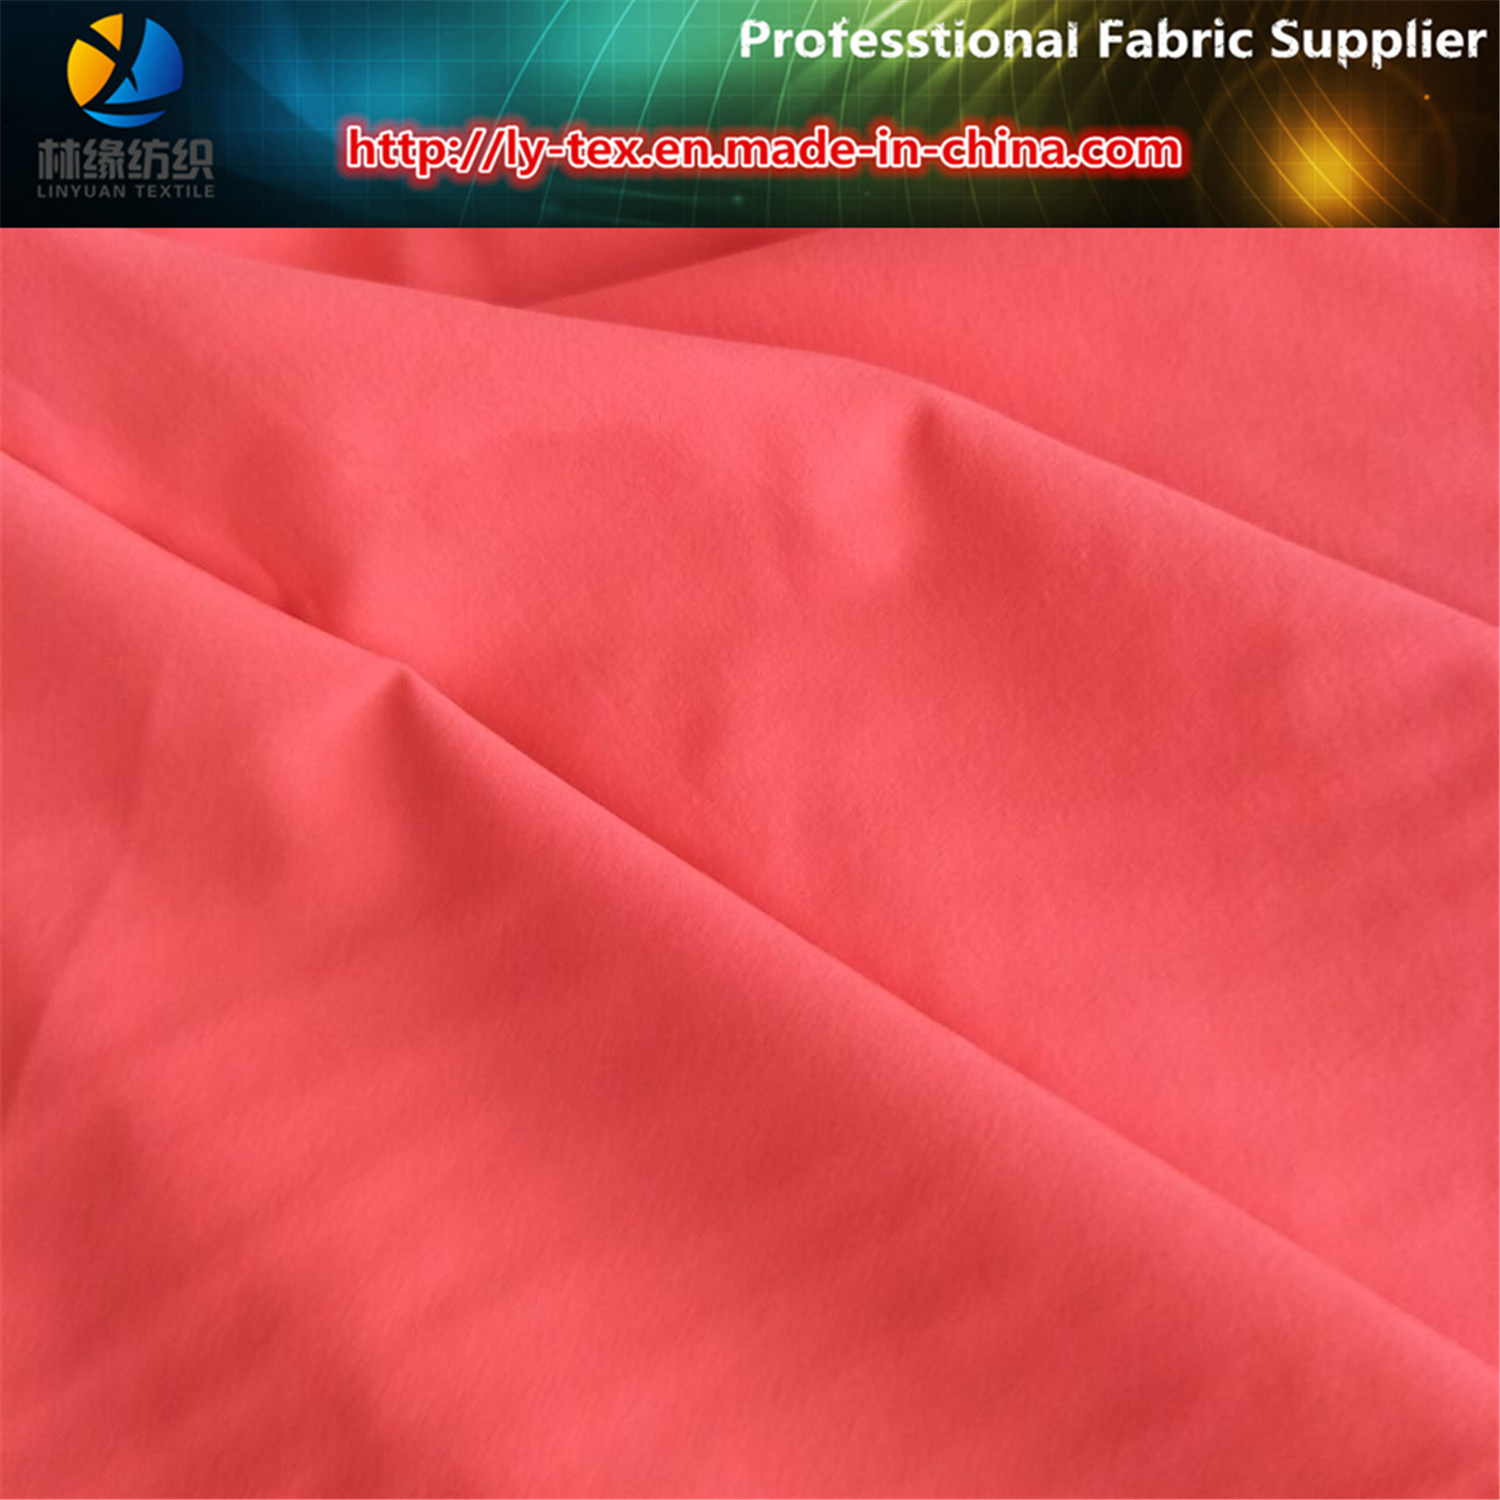 Prompt Goods of Polyester 4 Ways Stretch Fabric, Polyester Elastic Woven Textile Fabric